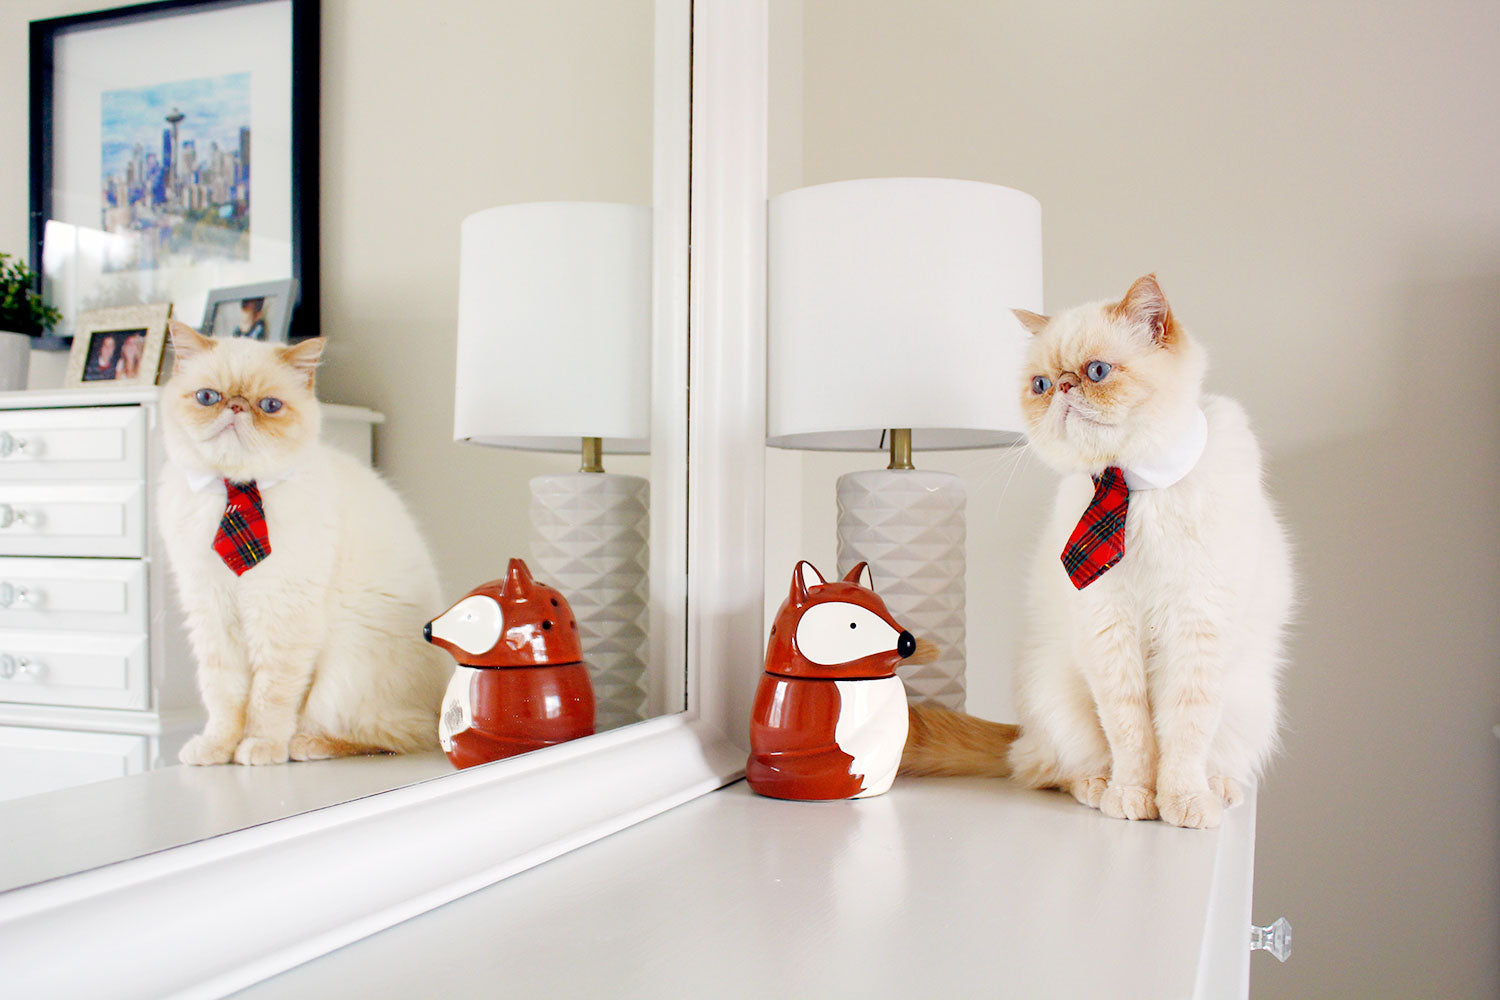 Ludwig von Cat, a Flat face exotic shorthair white cat, for vegan and cruelty-free beauty